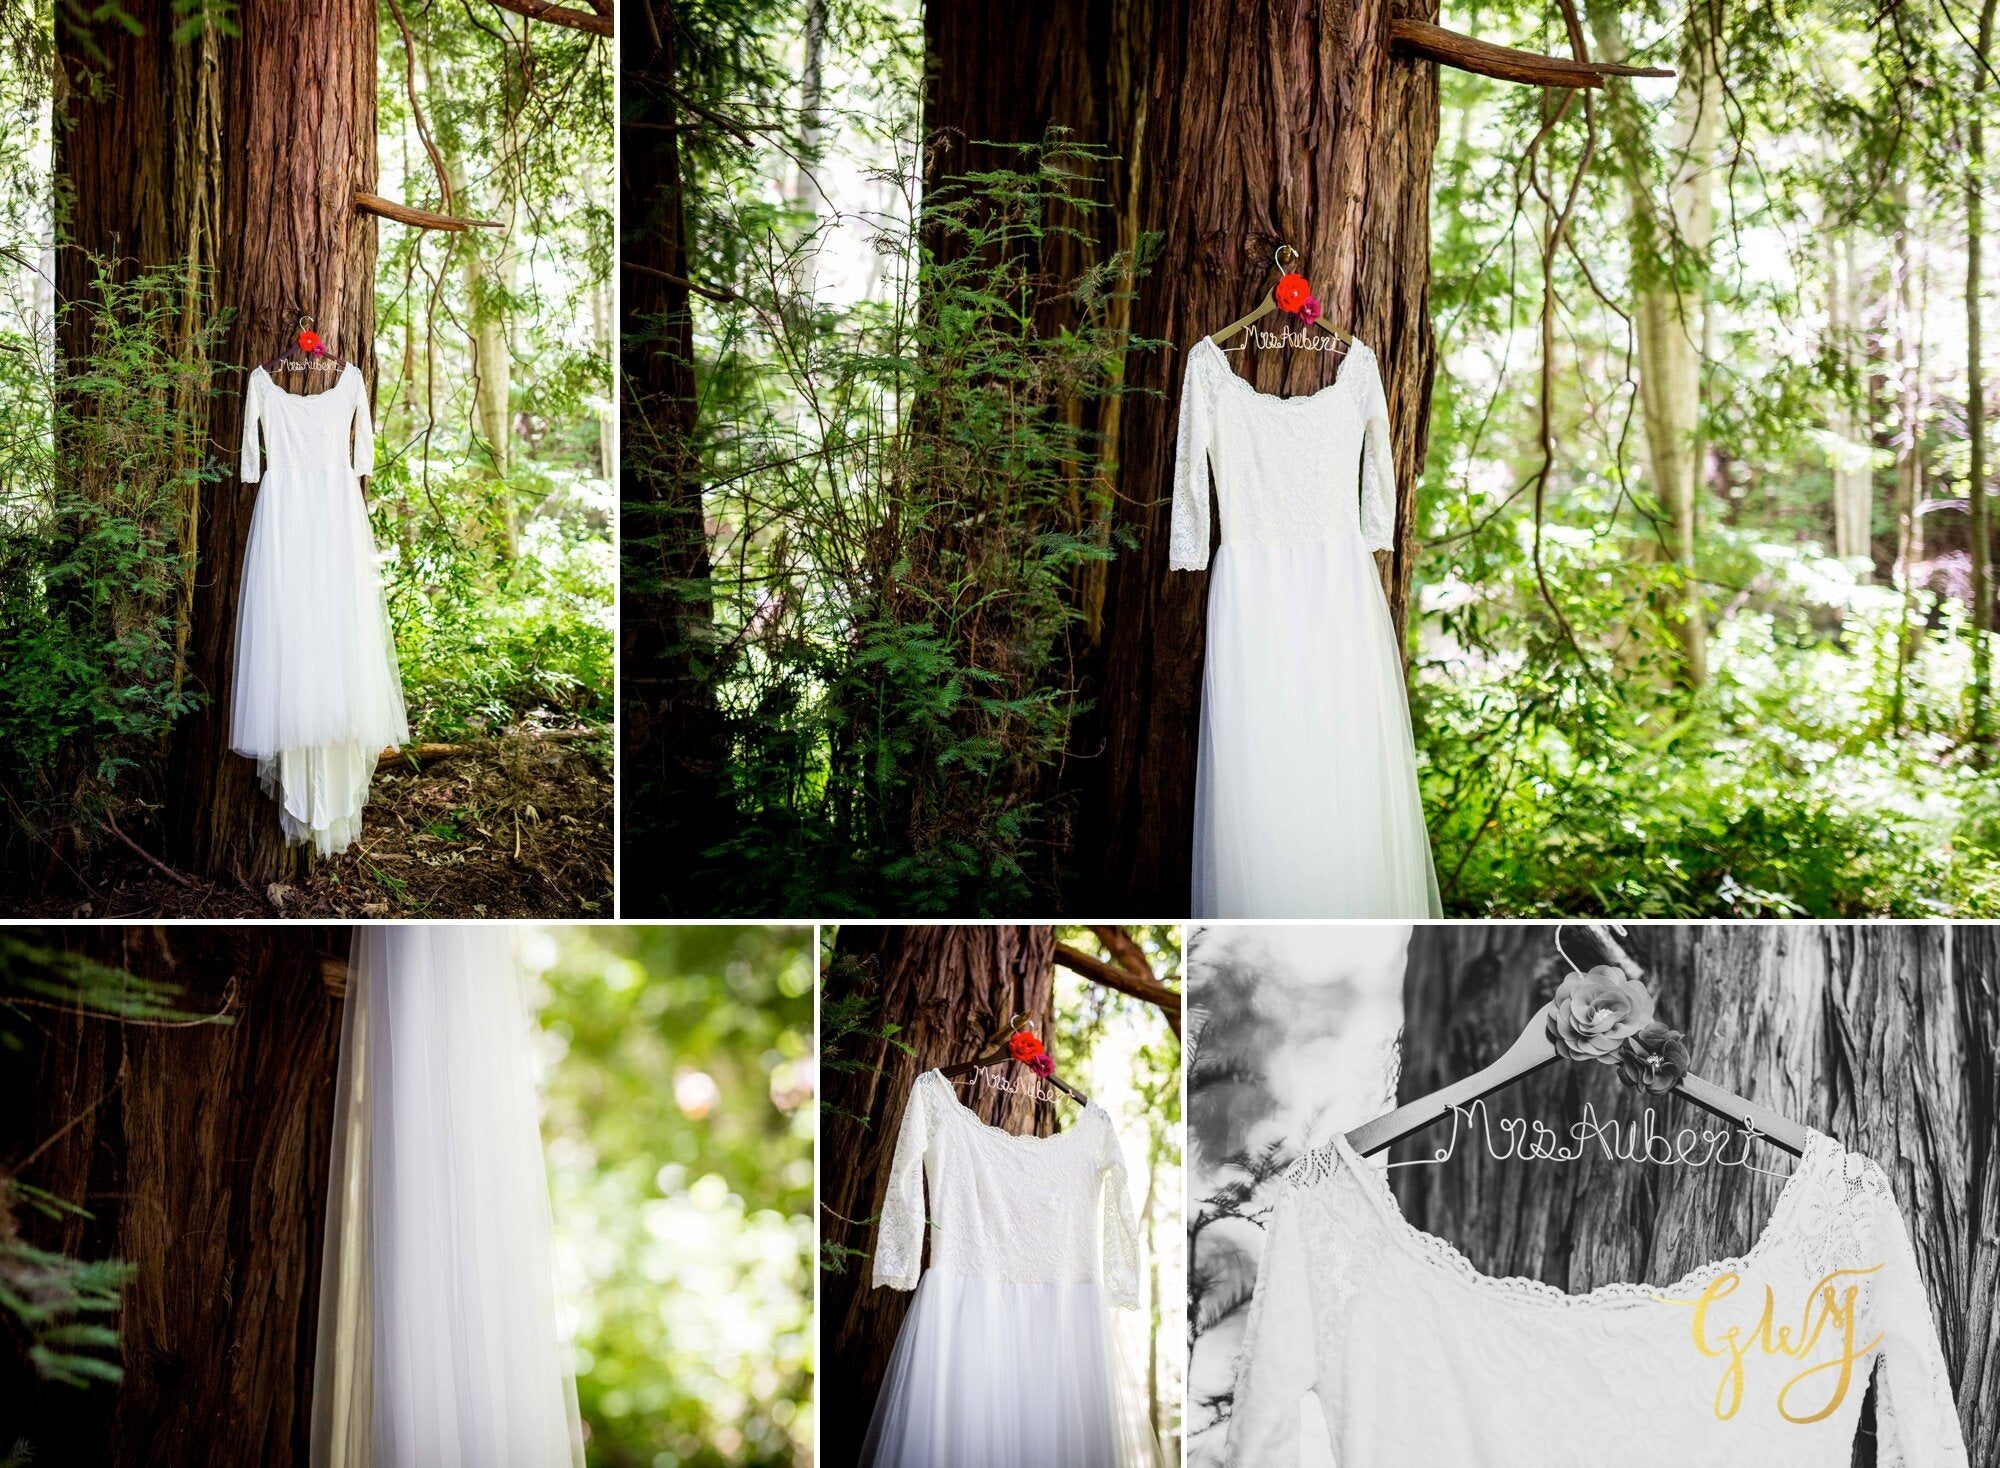 Casey + Jordan's Intimate Big Sur Elopement In The Redwoods